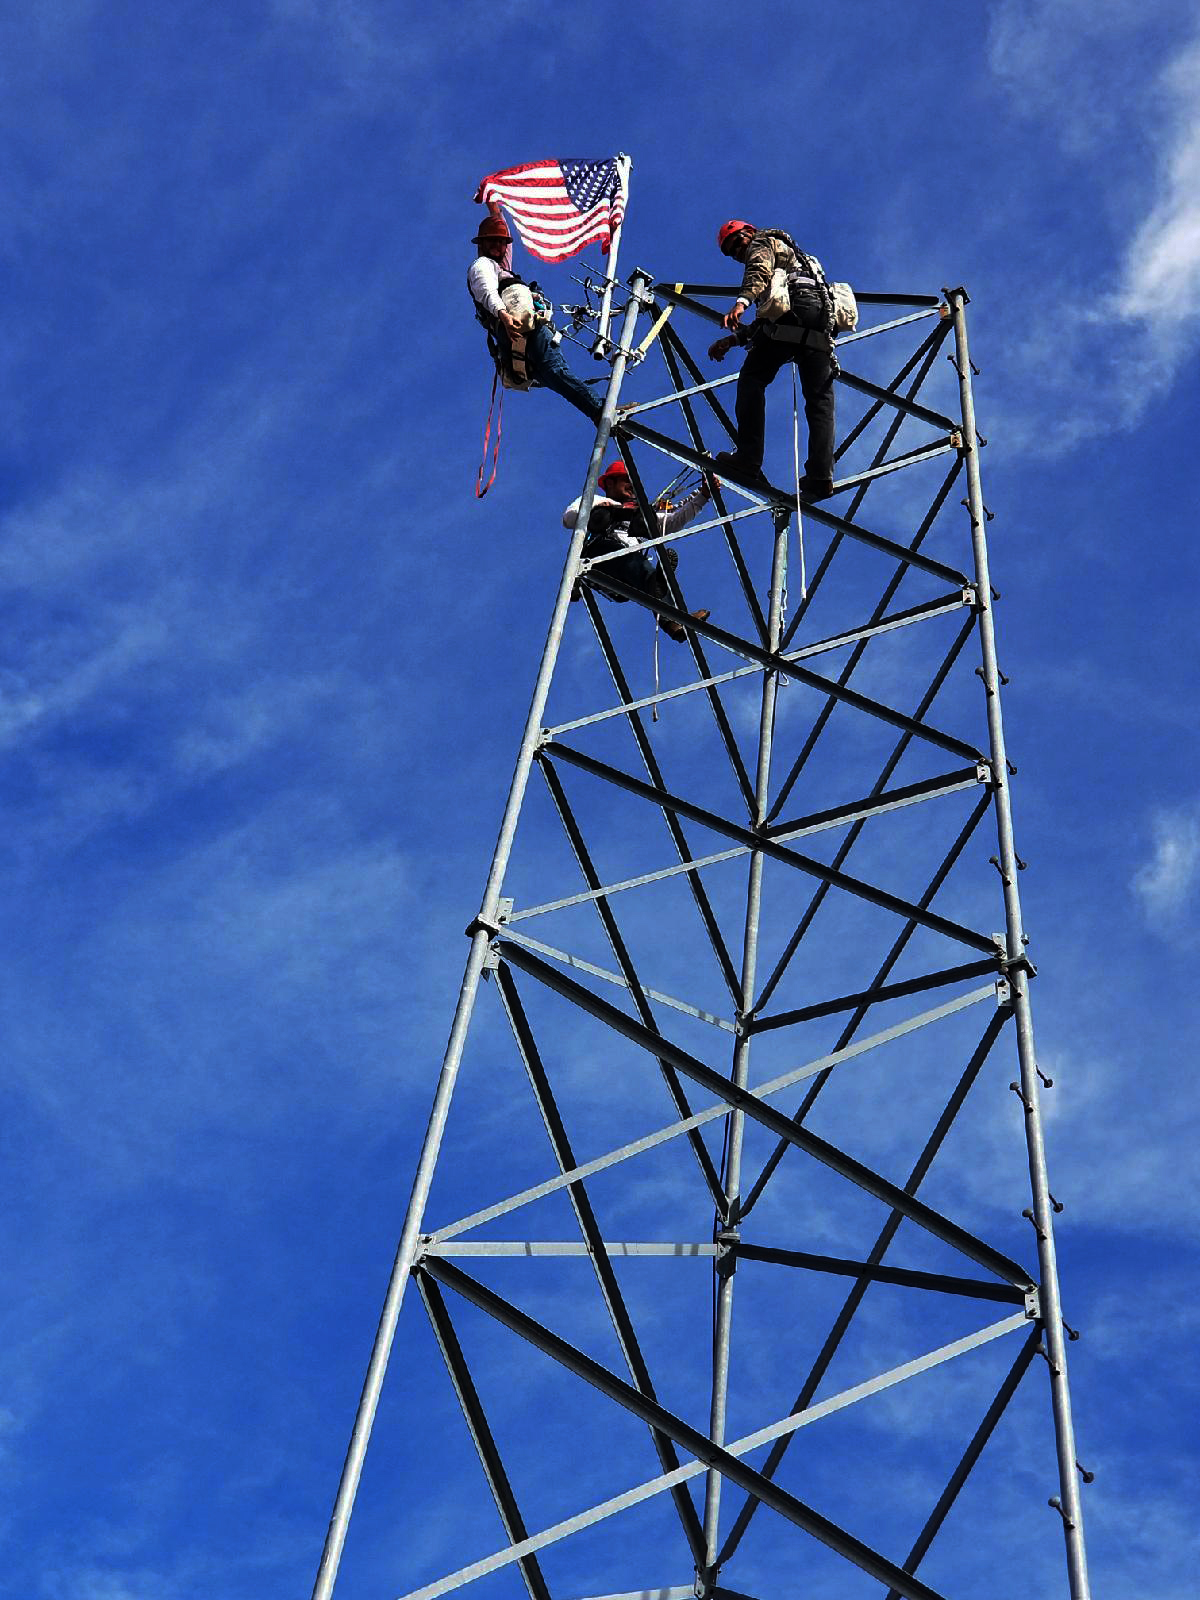 competent climber certification for cell tower workers